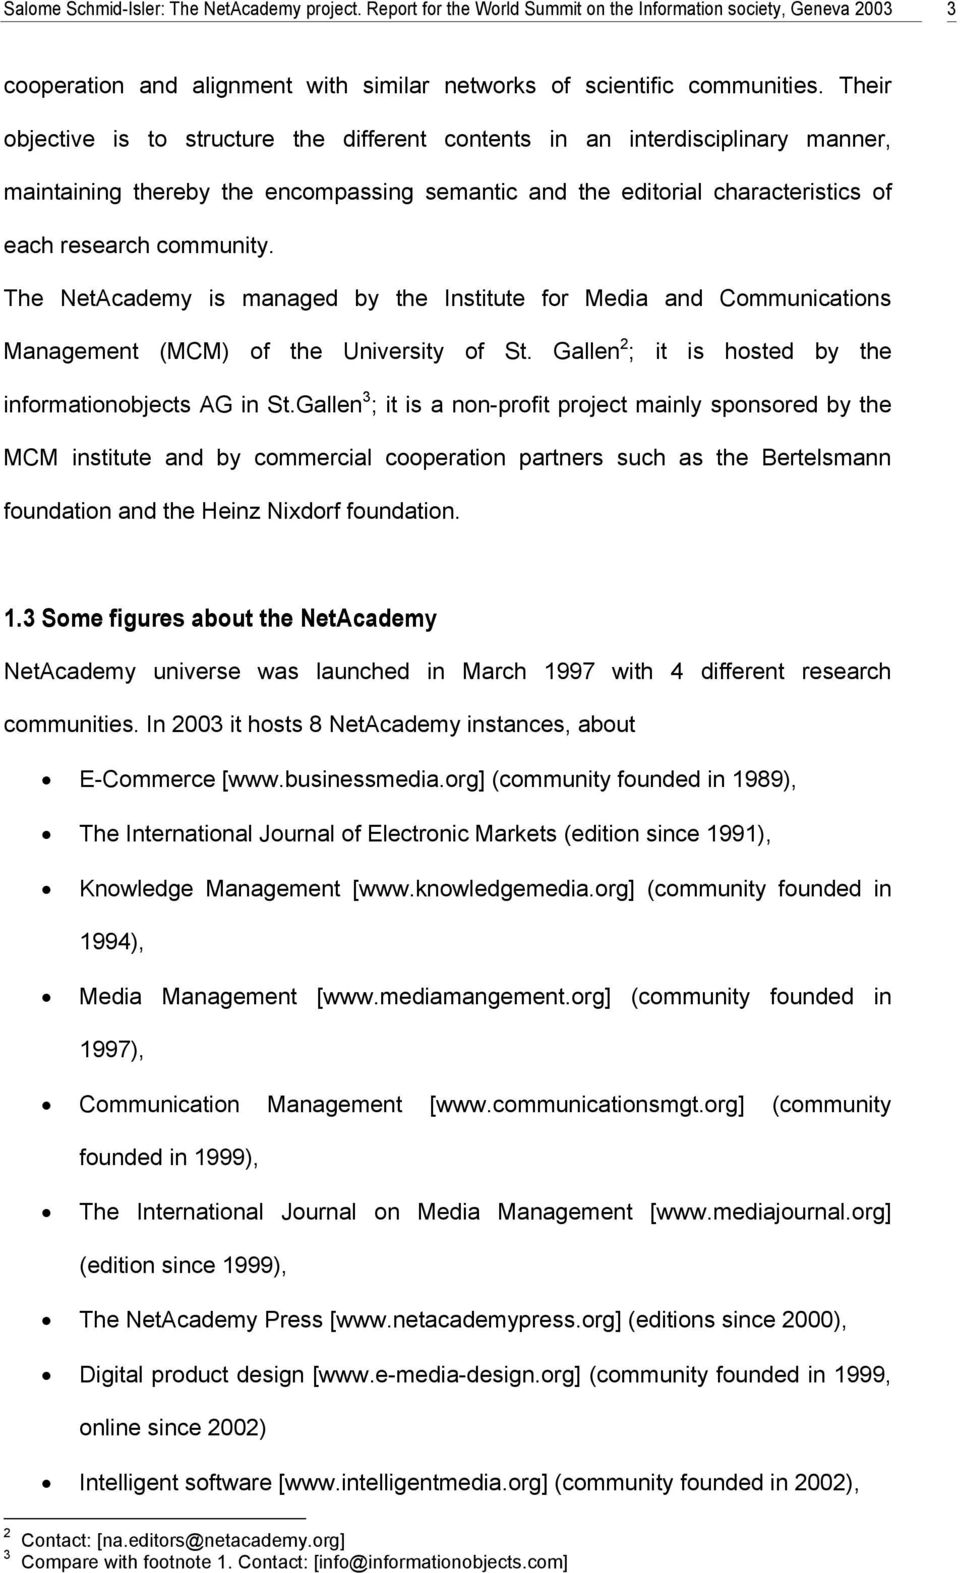 The NetAcademy is managed by the Institute for Media and Communications Management (MCM) of the University of St. Gallen 2 ; it is hosted by the informationobjects AG in St.